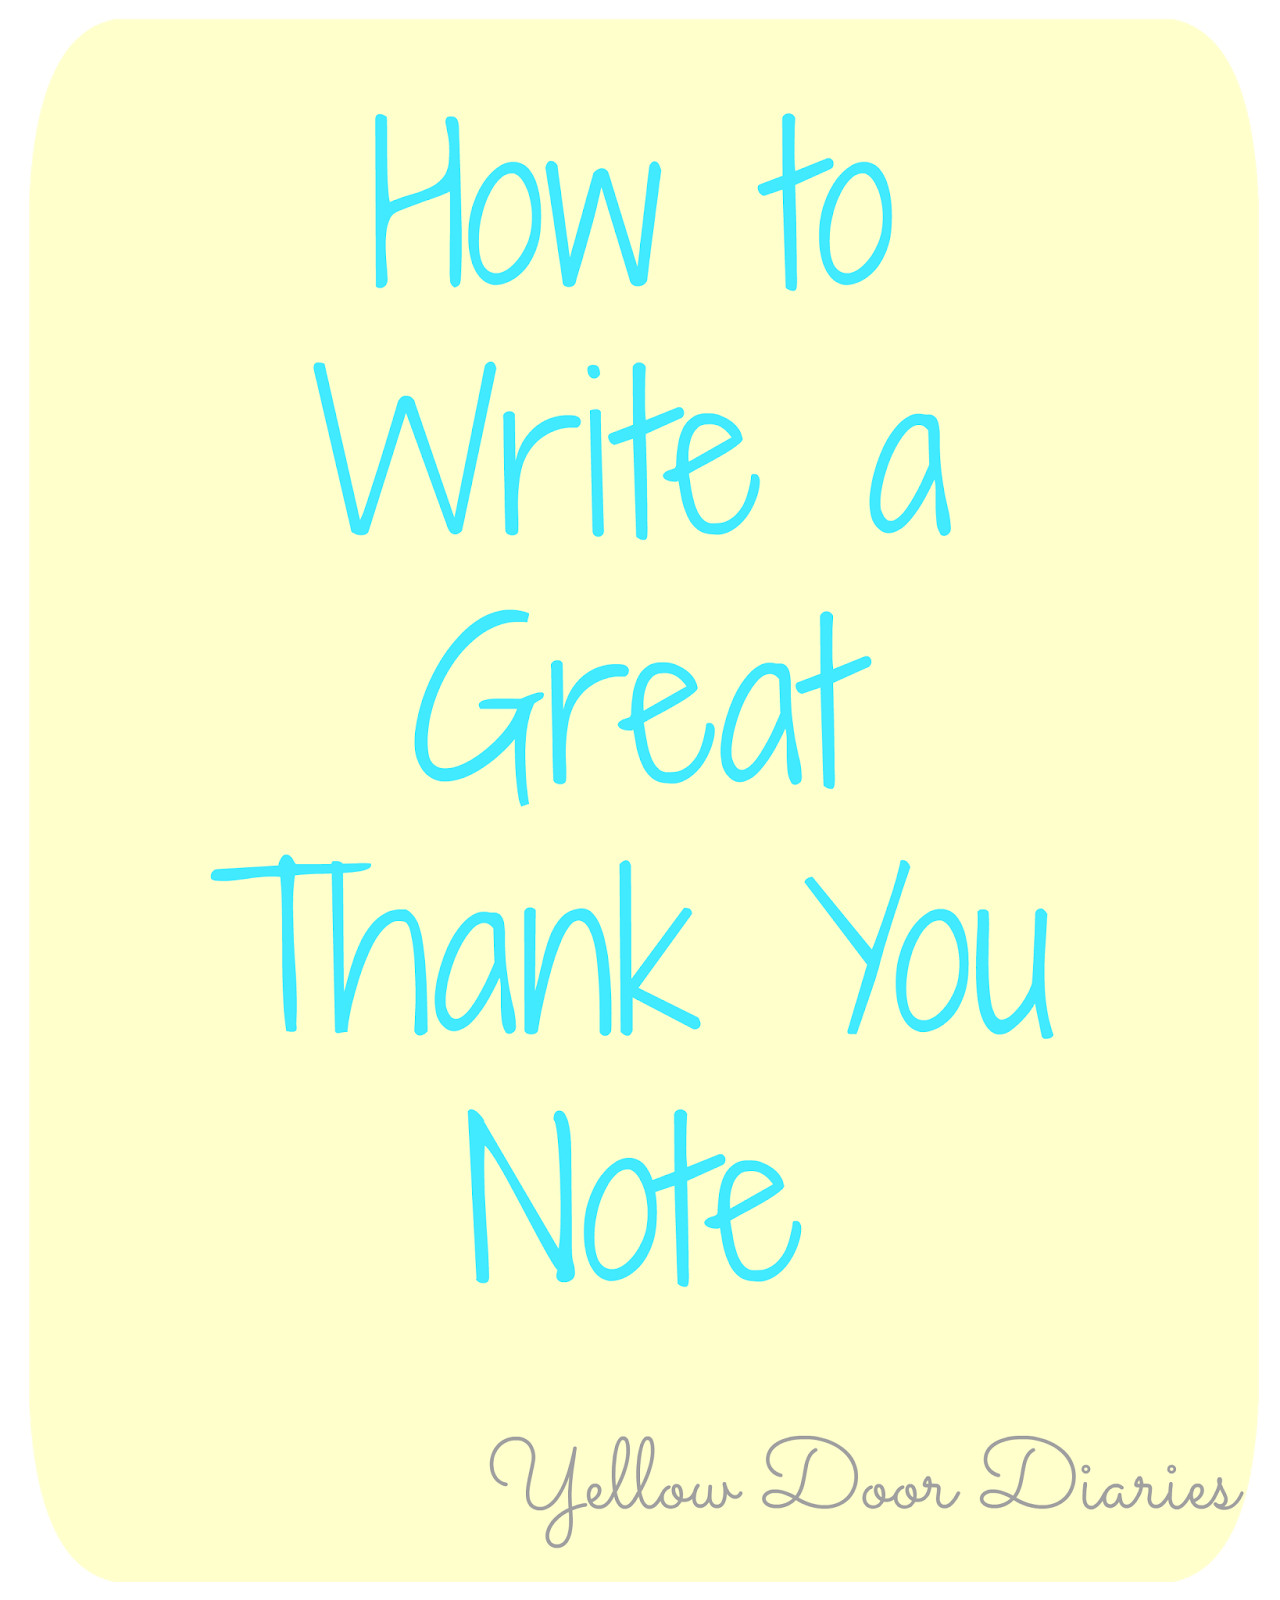 yellow door diaries how to write a great thank you note and make your hand hurt if you have to do many at once but there are few ways that better express gratitude than a kind well written thank you note